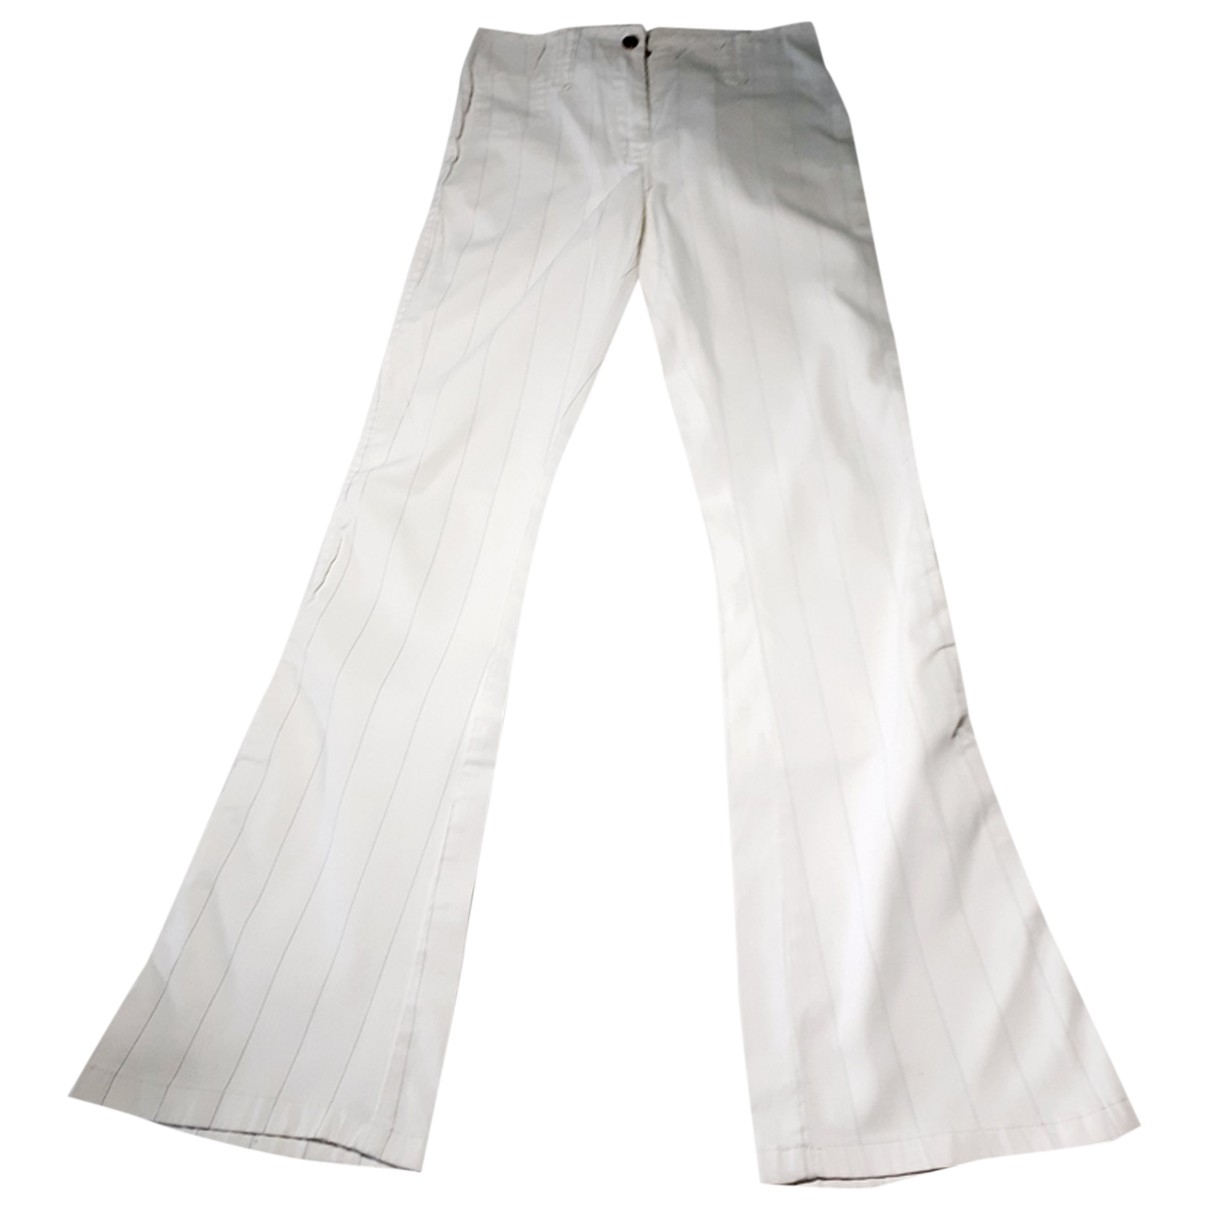 Dkny \N White Cotton Trousers for Kids 12 years - XS FR